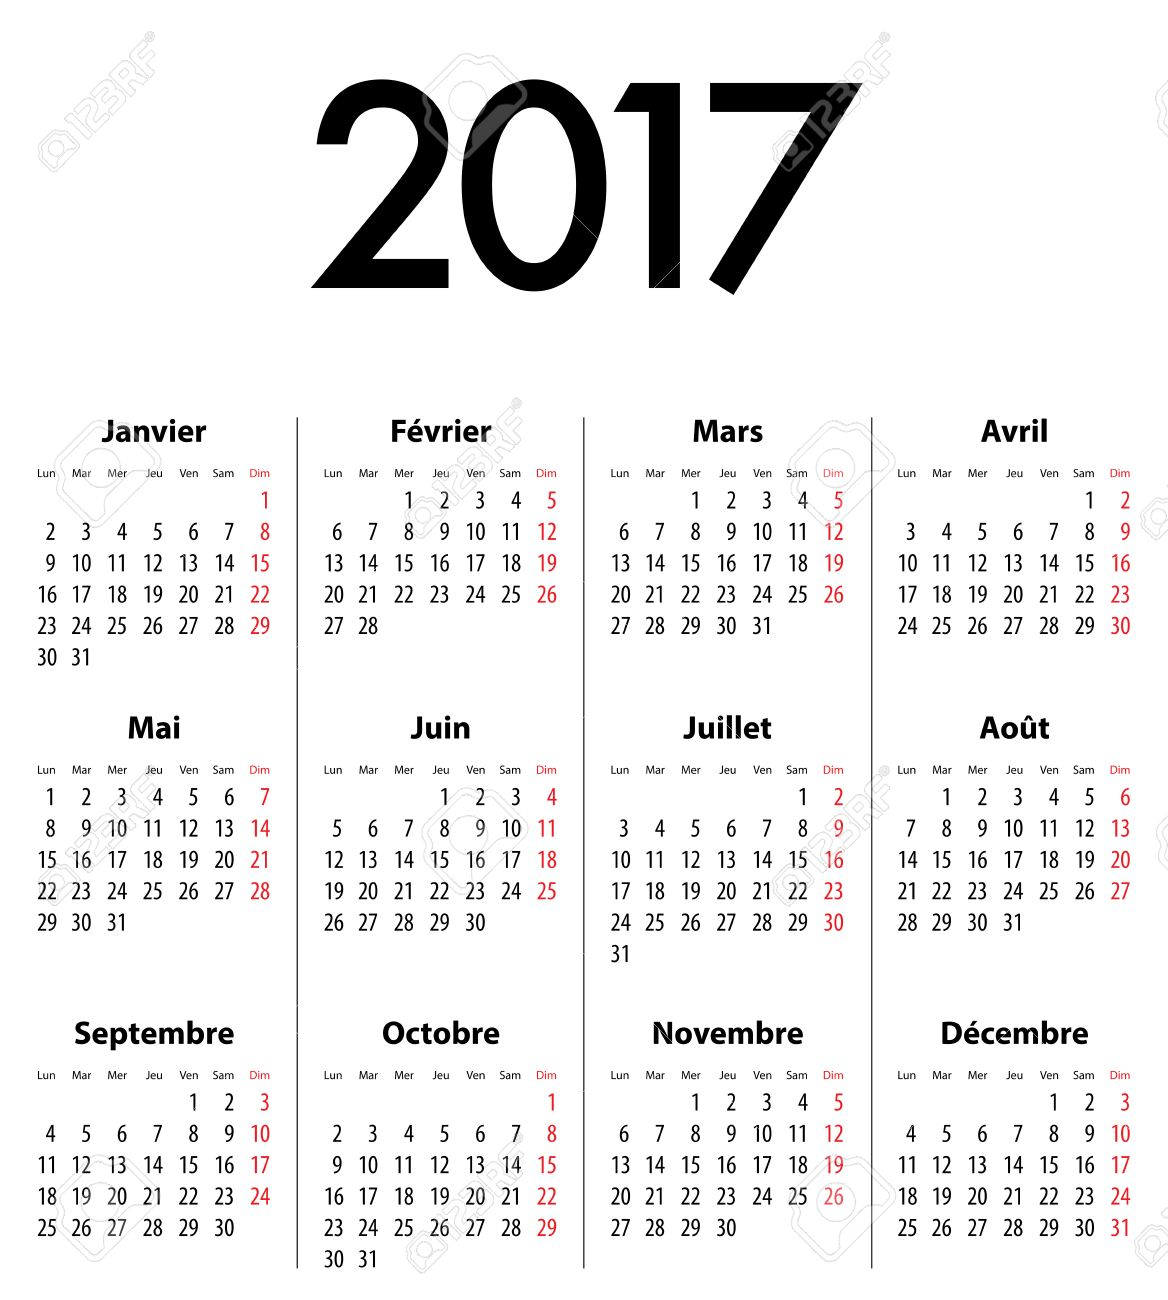 french calendar grid for 2017 year best for calendar print business web design